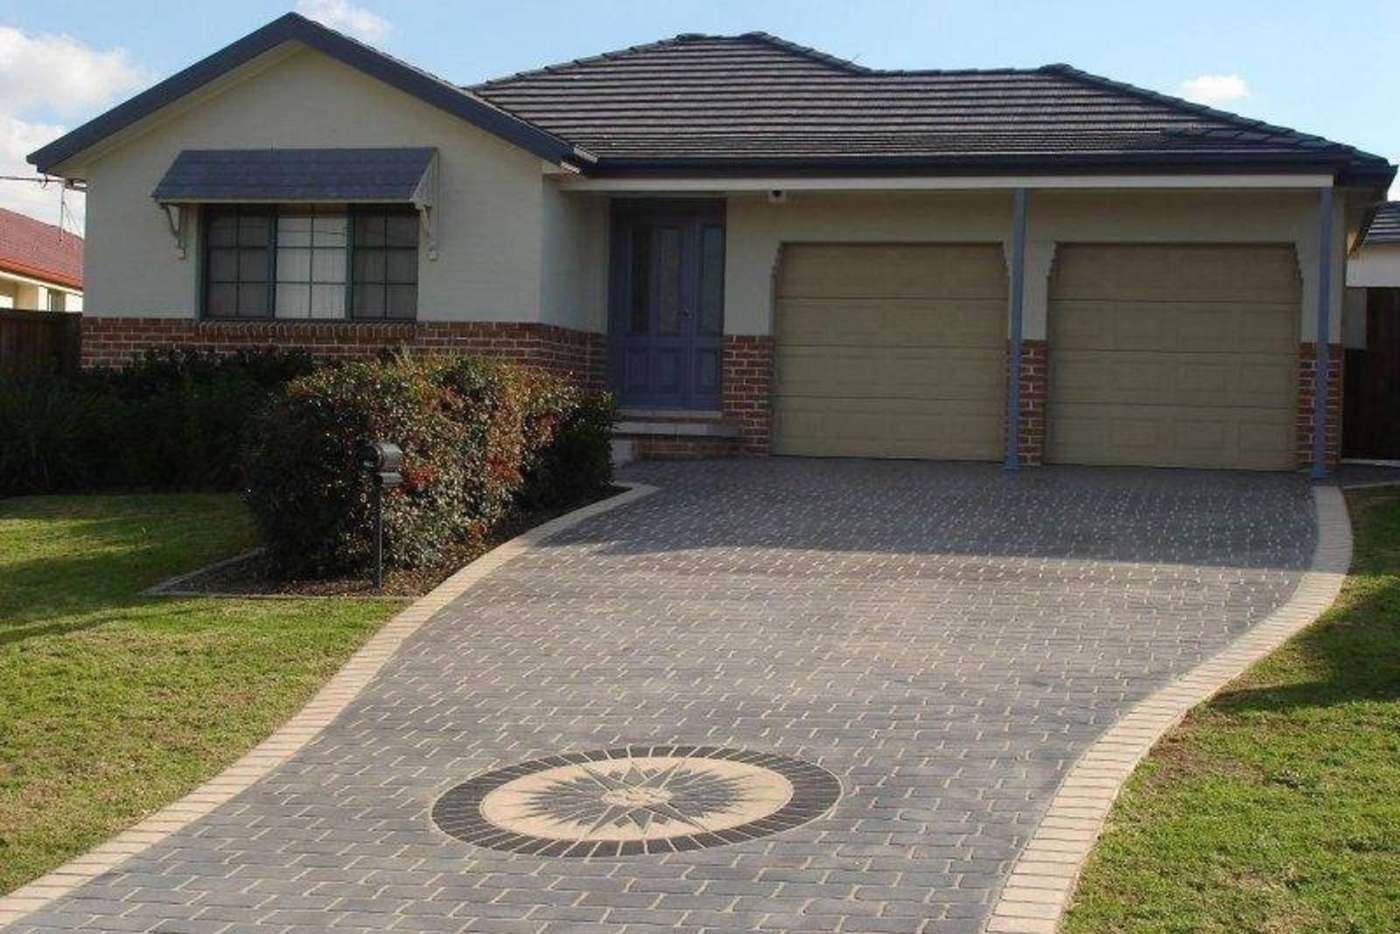 Main view of Homely house listing, 3 Vineyard Haven Parade, Branxton NSW 2335